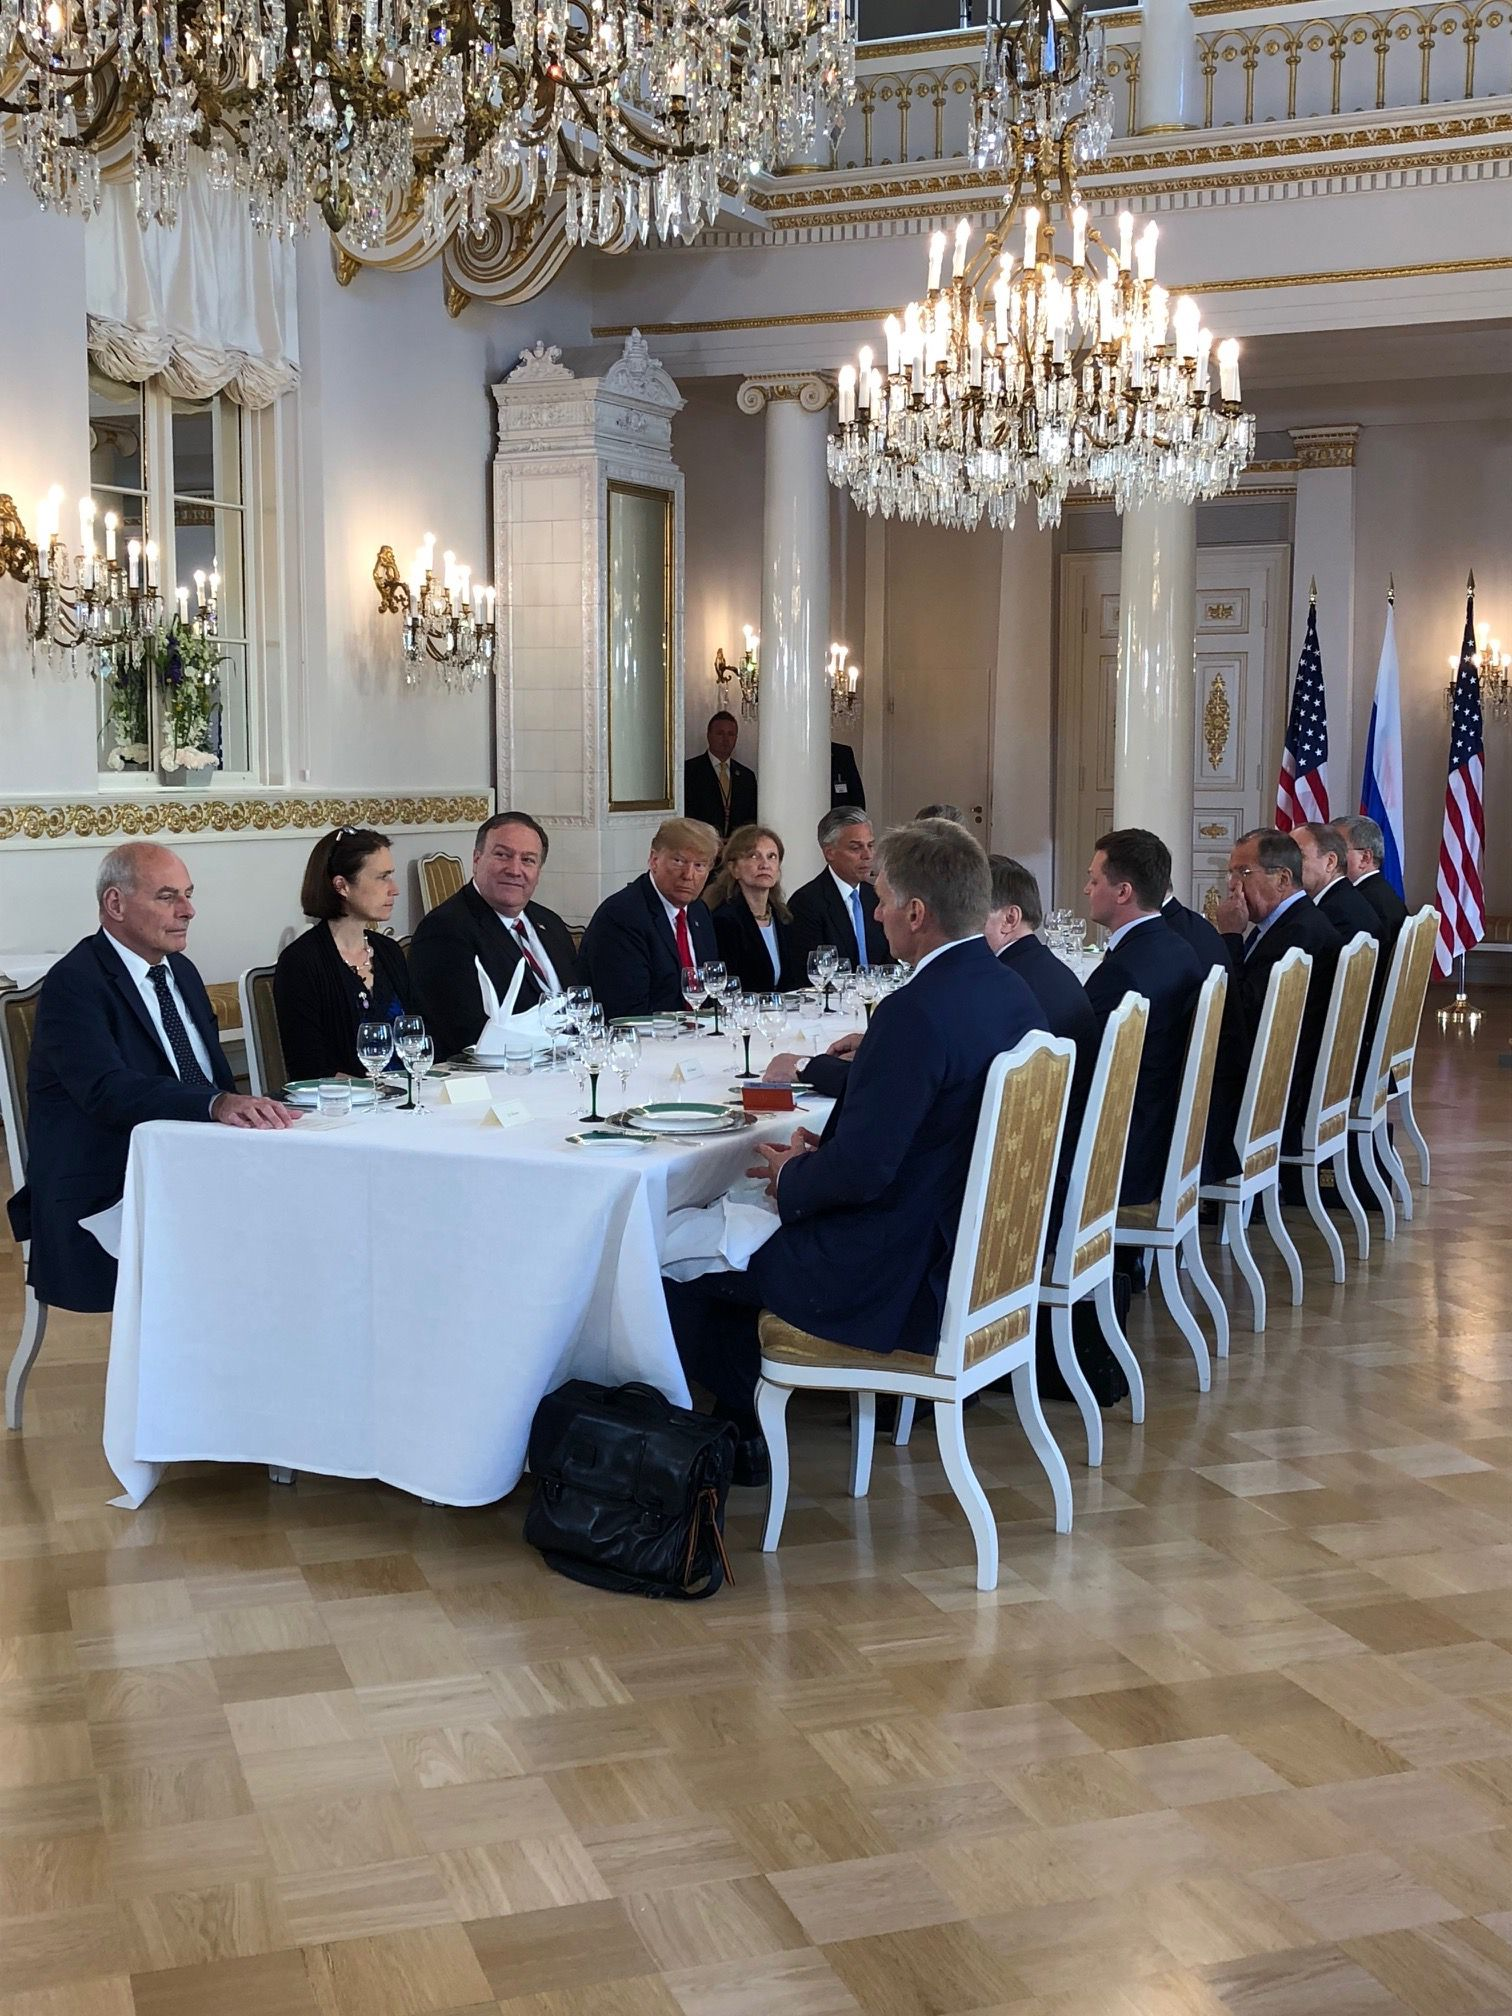 President Trump and President Putin at a dining table with other officials.